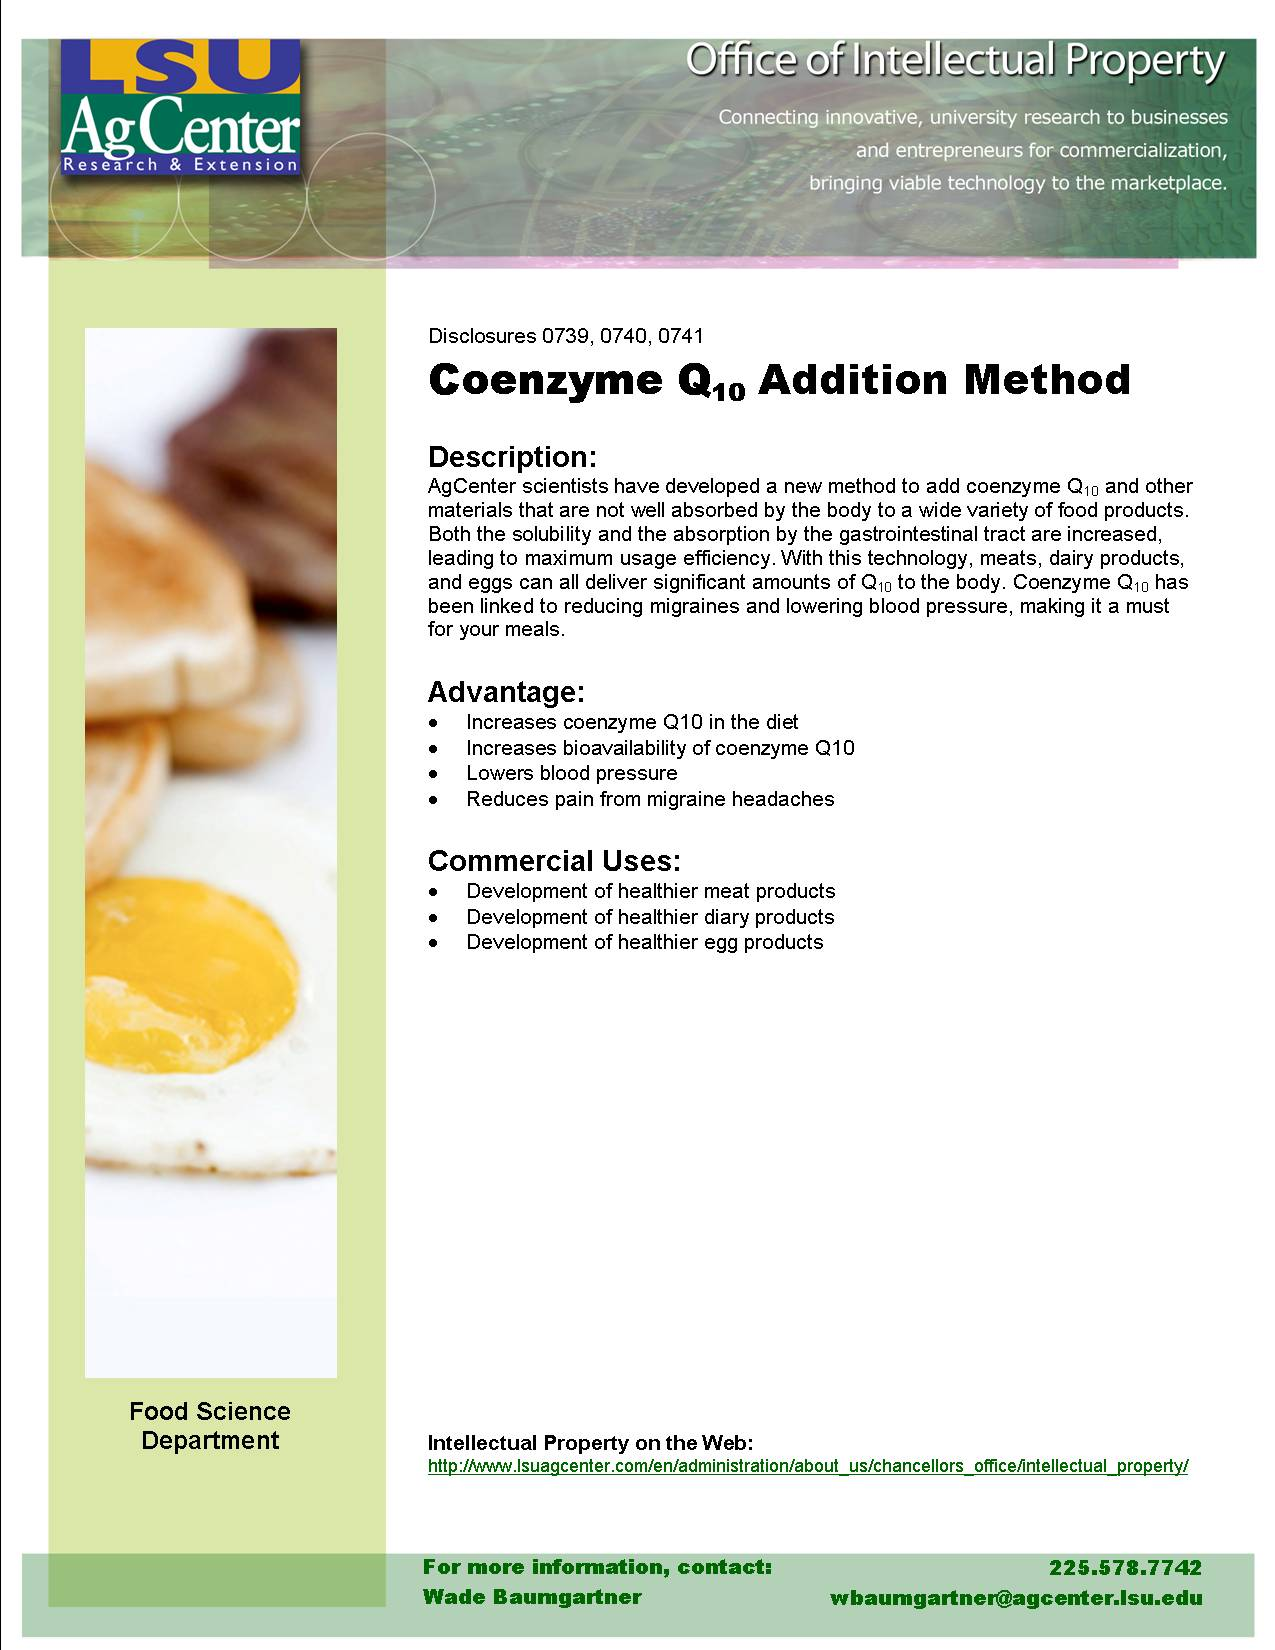 Coenzyme Q10 Addition Method